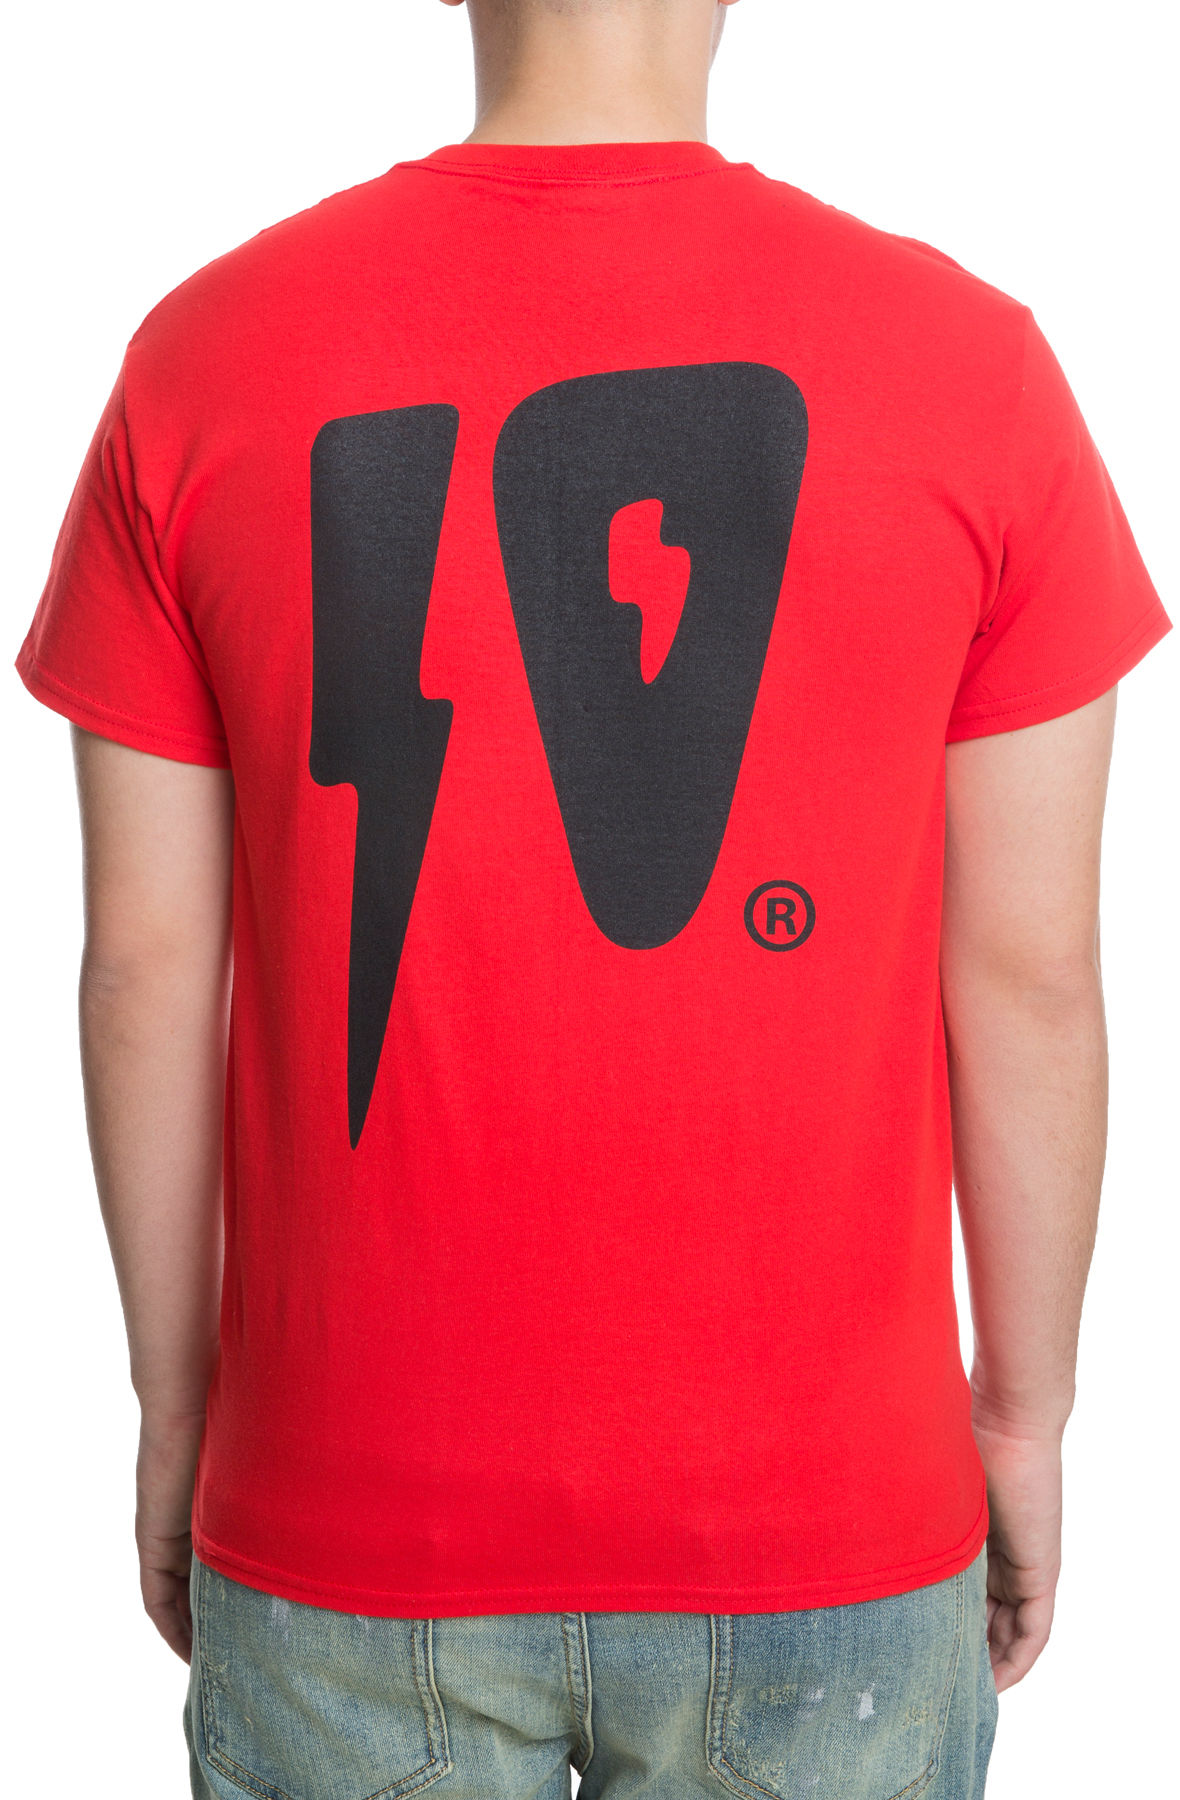 Image of The 10 Strikes S/S Tee in Red